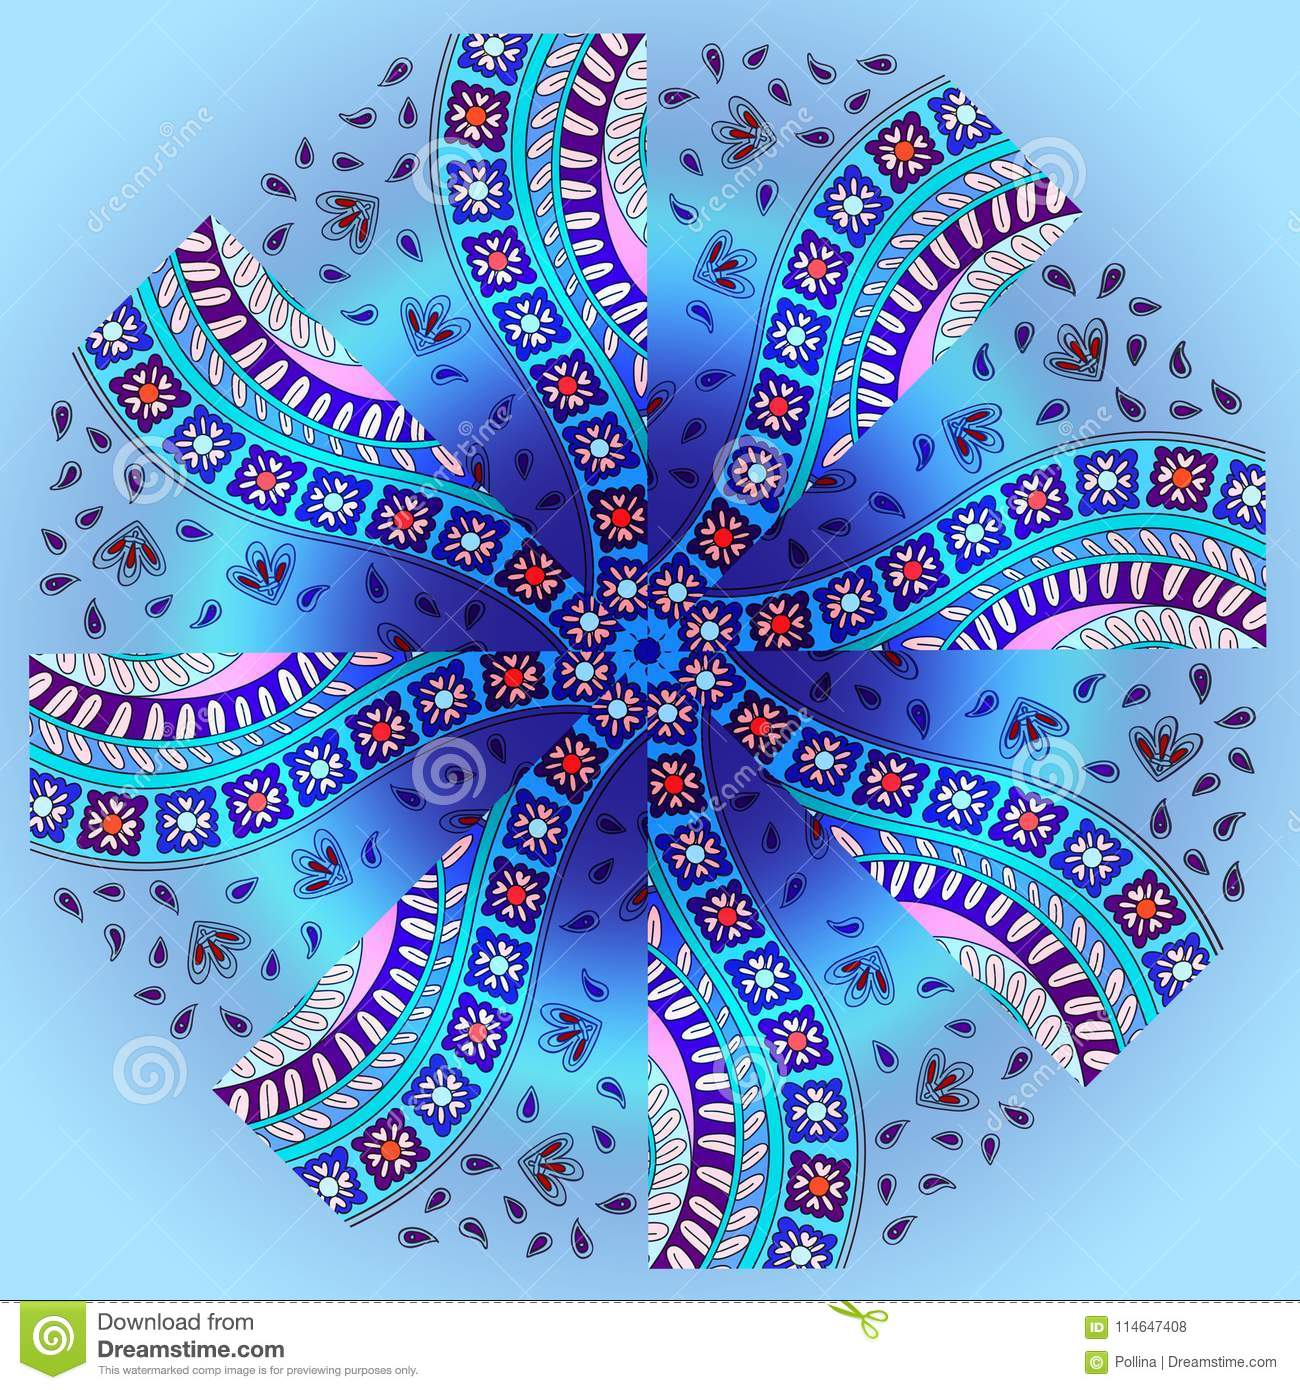 photograph regarding Umbrella Pattern Printable called Spherical Behavior Umbrella Blue And Paisley Vibrant Inventory